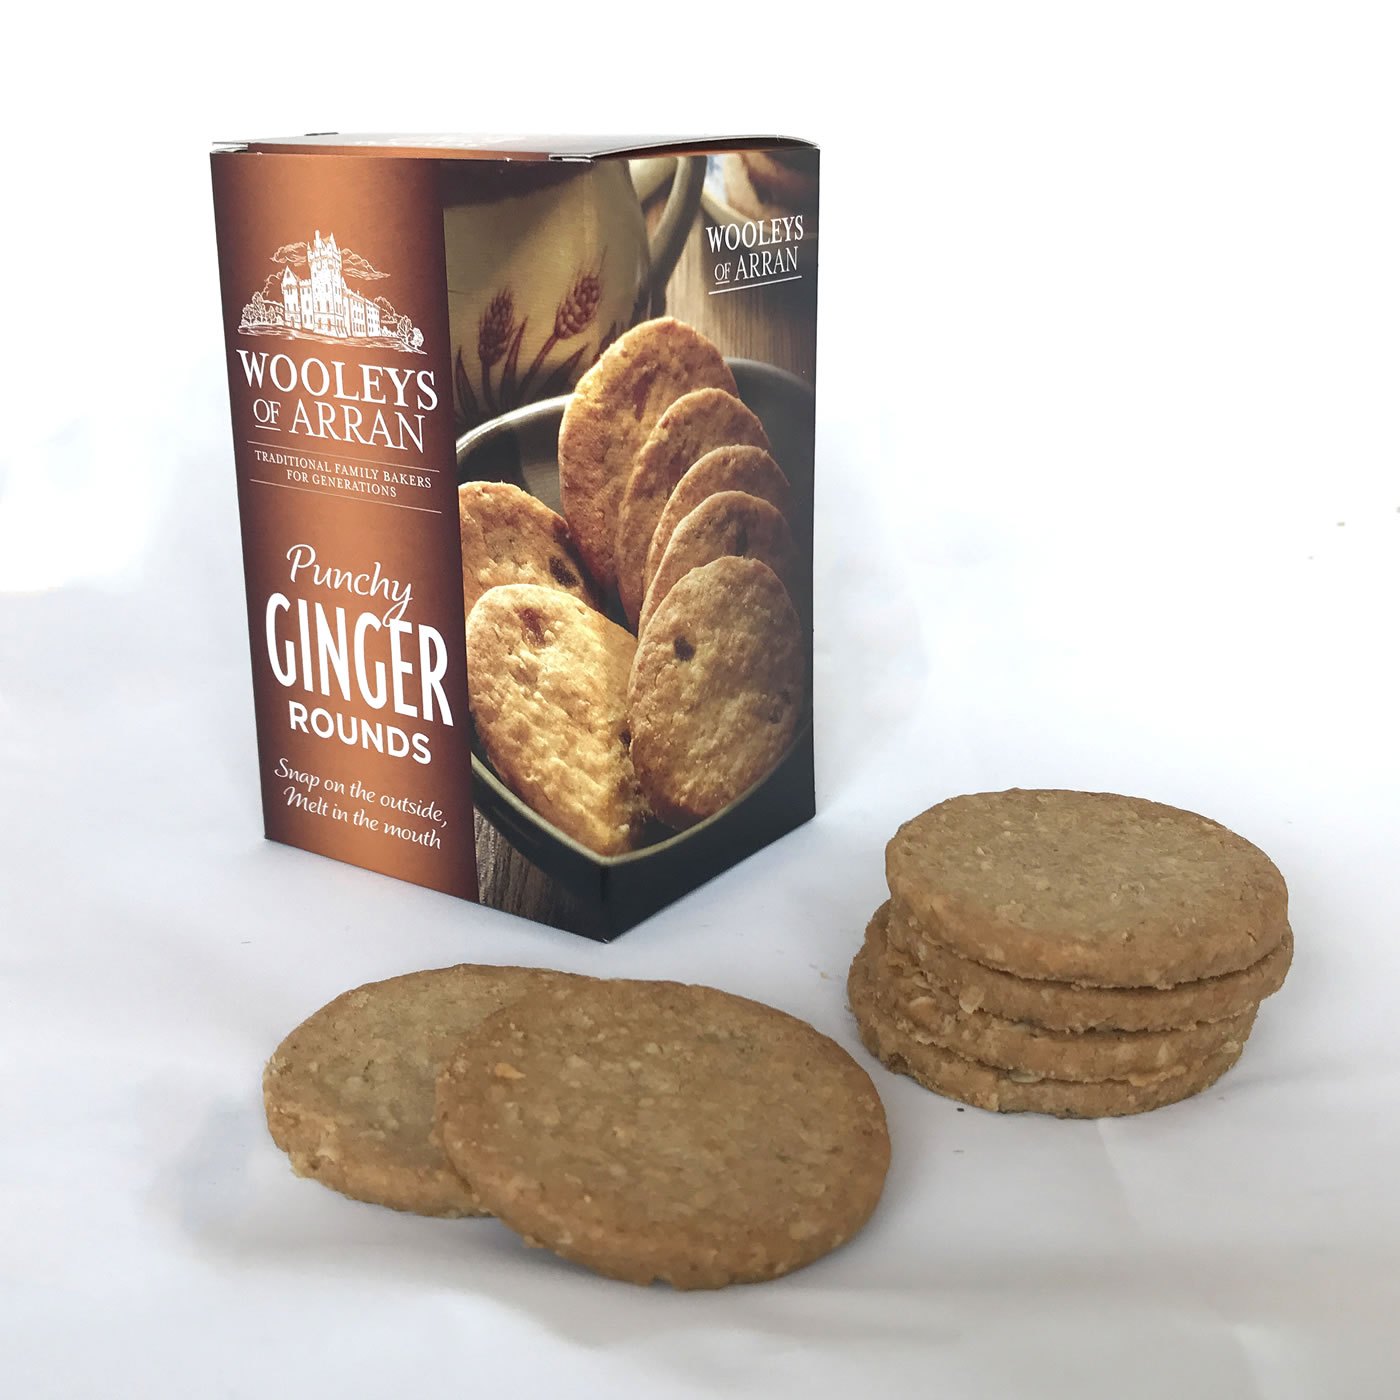 WOOLEYS GINGER ROUNDS